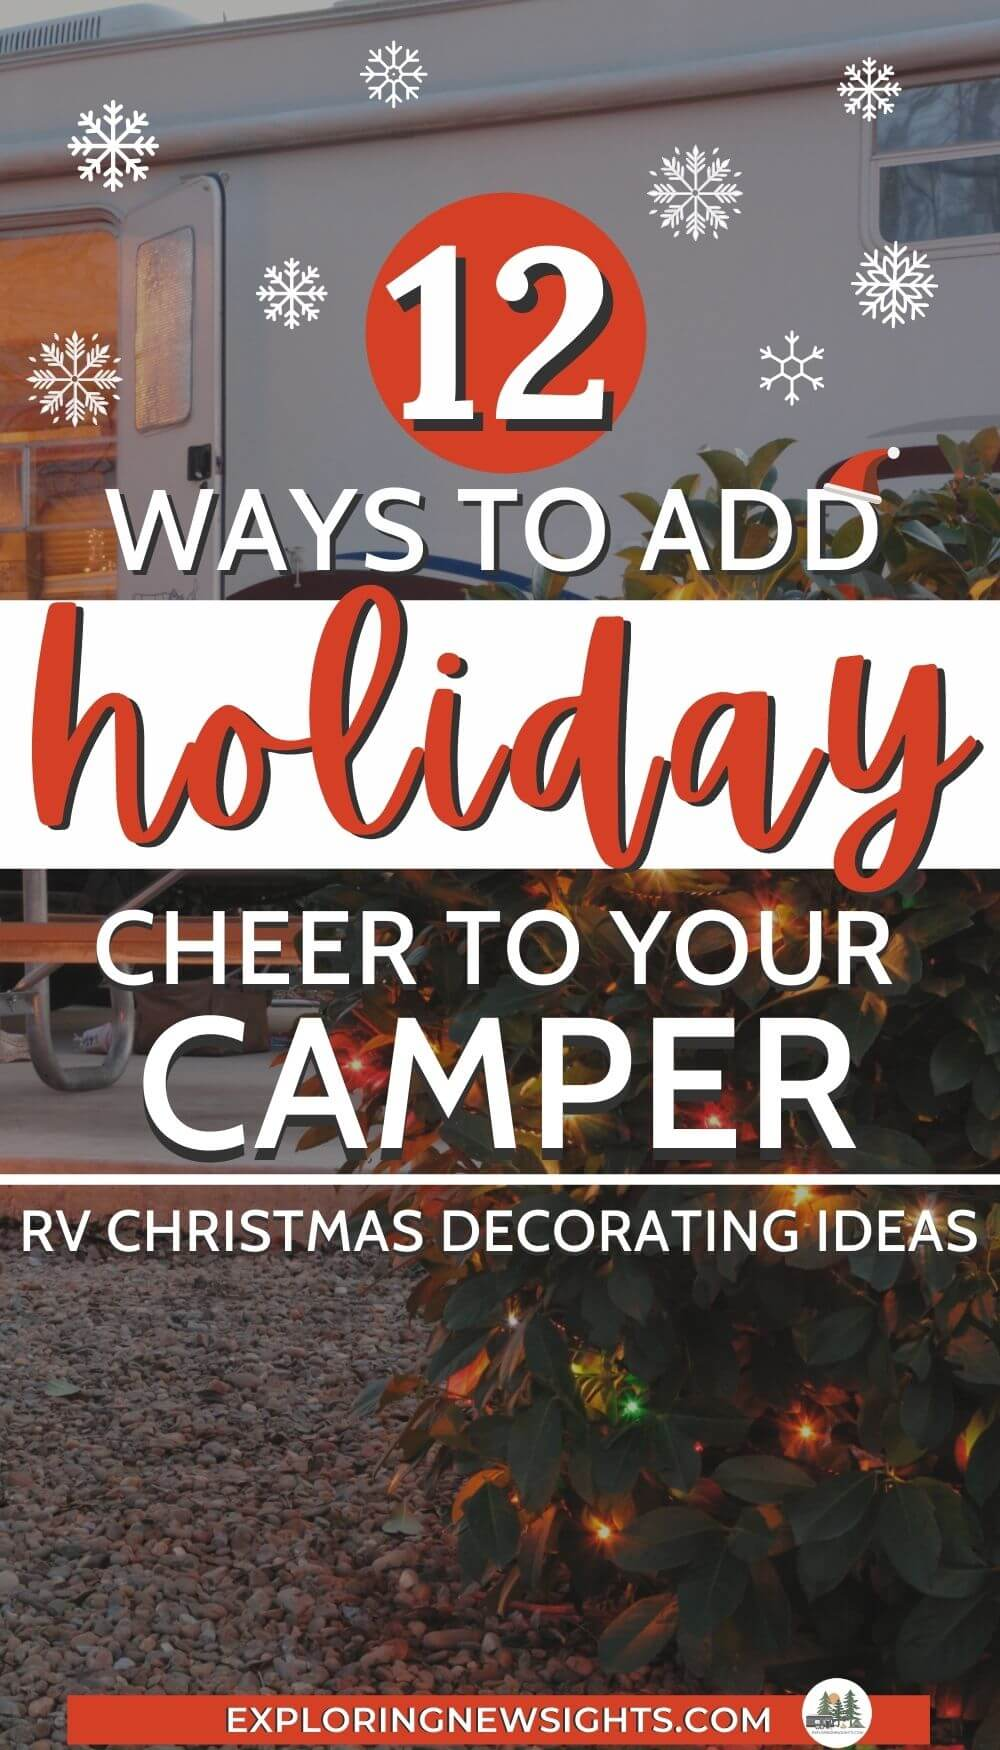 RV Christmas Decorating Ideas